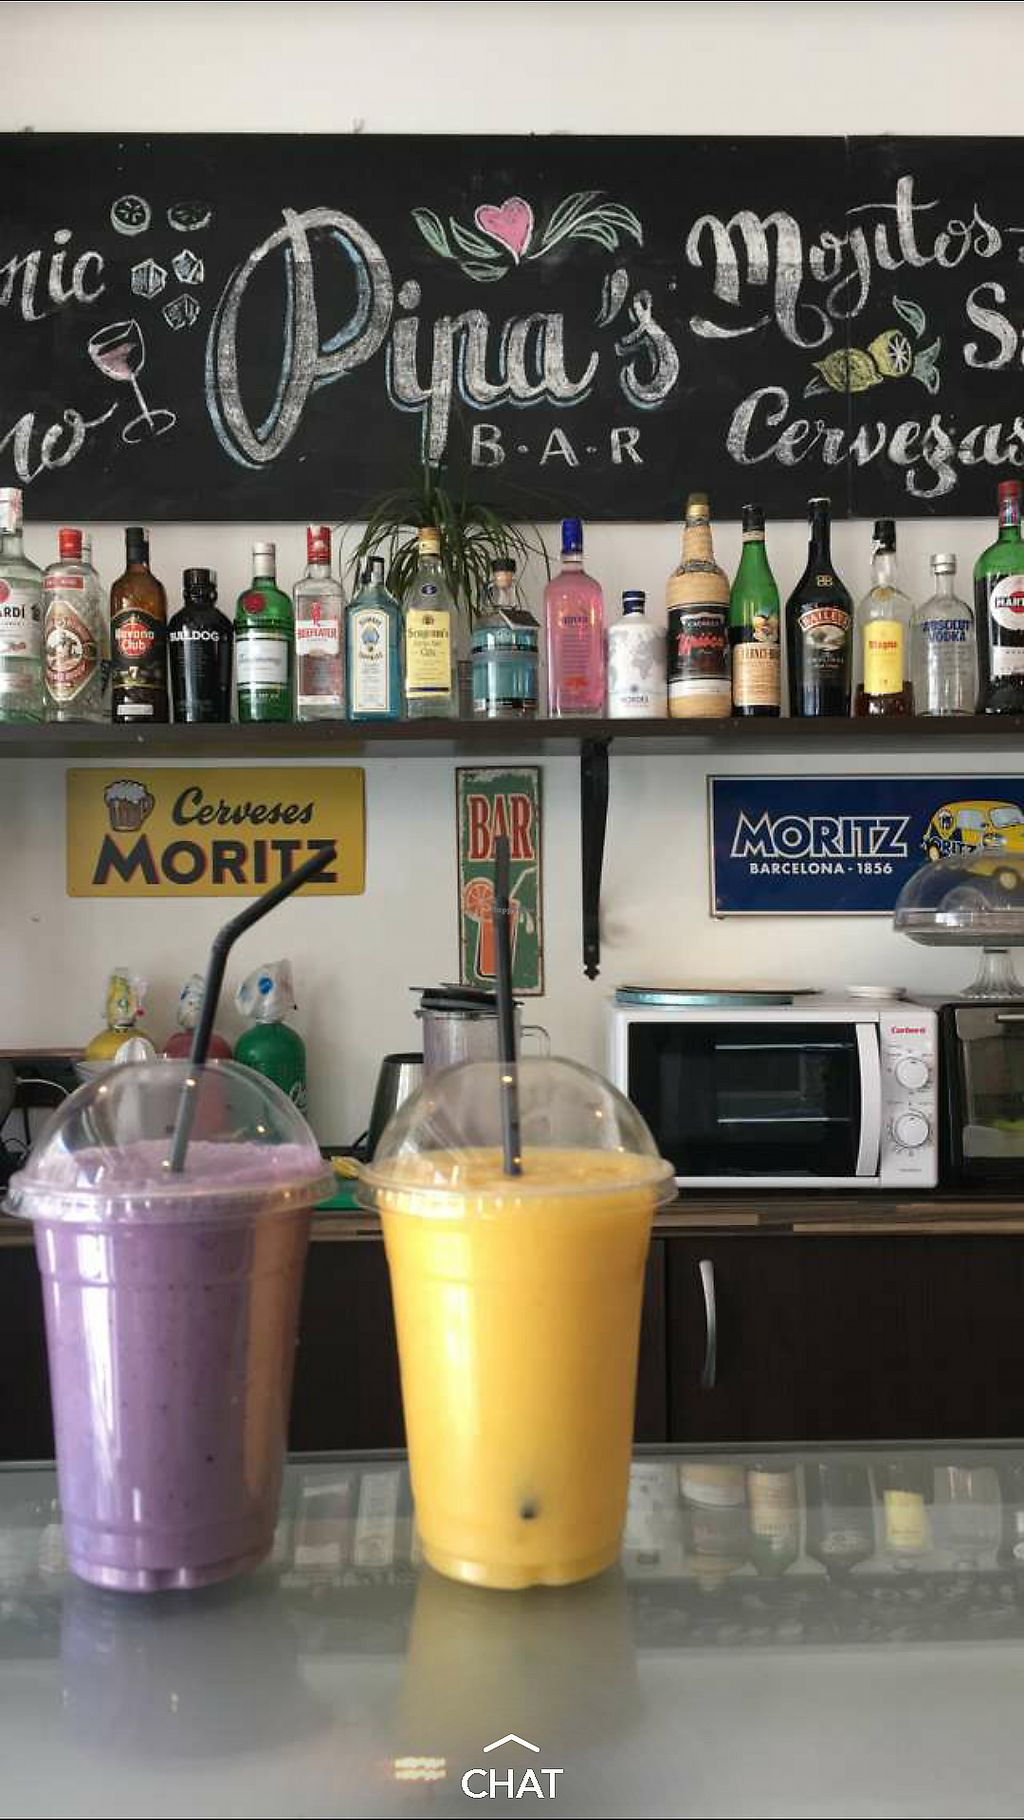 "Photo of Pipa's Bar  by <a href=""/members/profile/AthenaTrombly"">AthenaTrombly</a> <br/>Berry and mango smoothies  <br/> March 8, 2018  - <a href='/contact/abuse/image/113916/368194'>Report</a>"